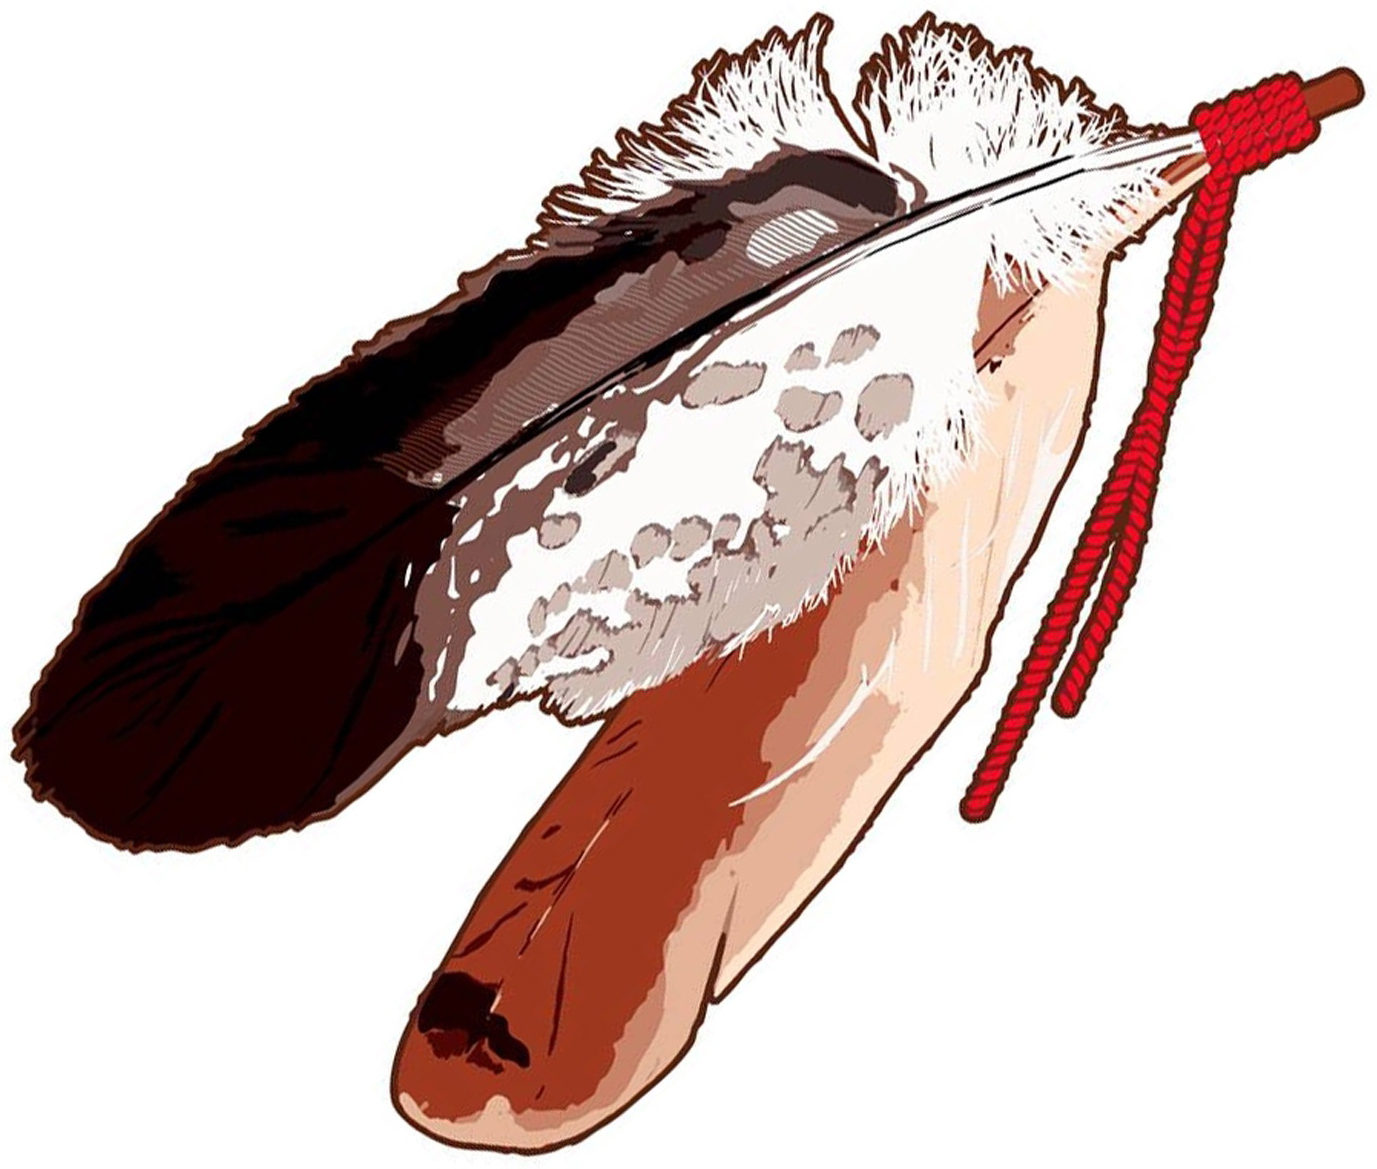 Feather image representing the partnership of the Miami Tribe and Miami University